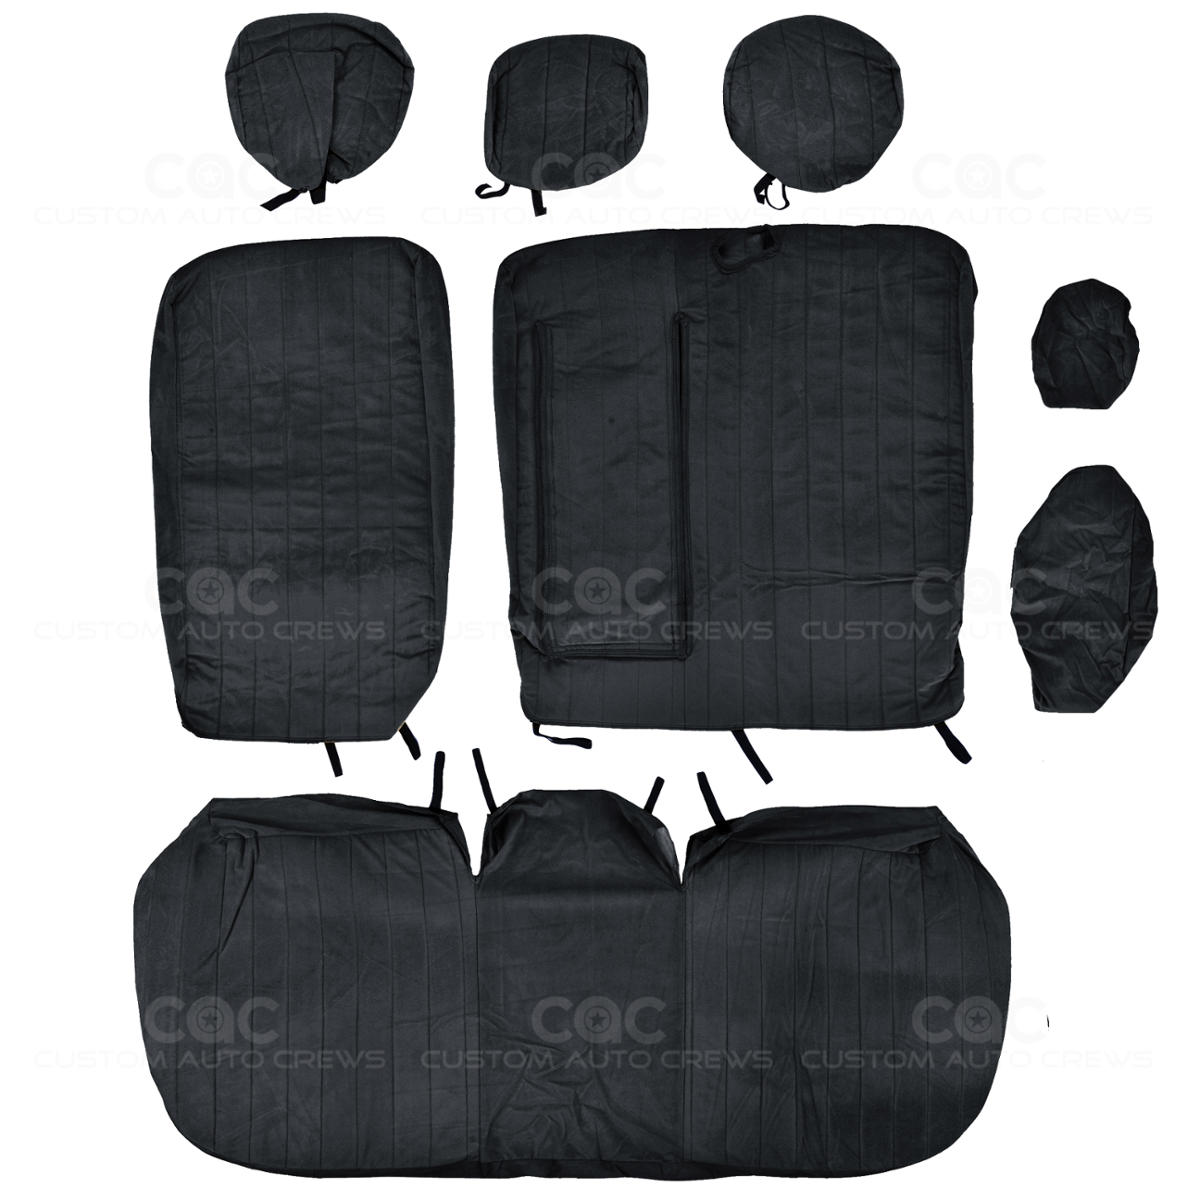 Custom Fit Seat Cover For Honda Civic 2013 To 2015 Velour